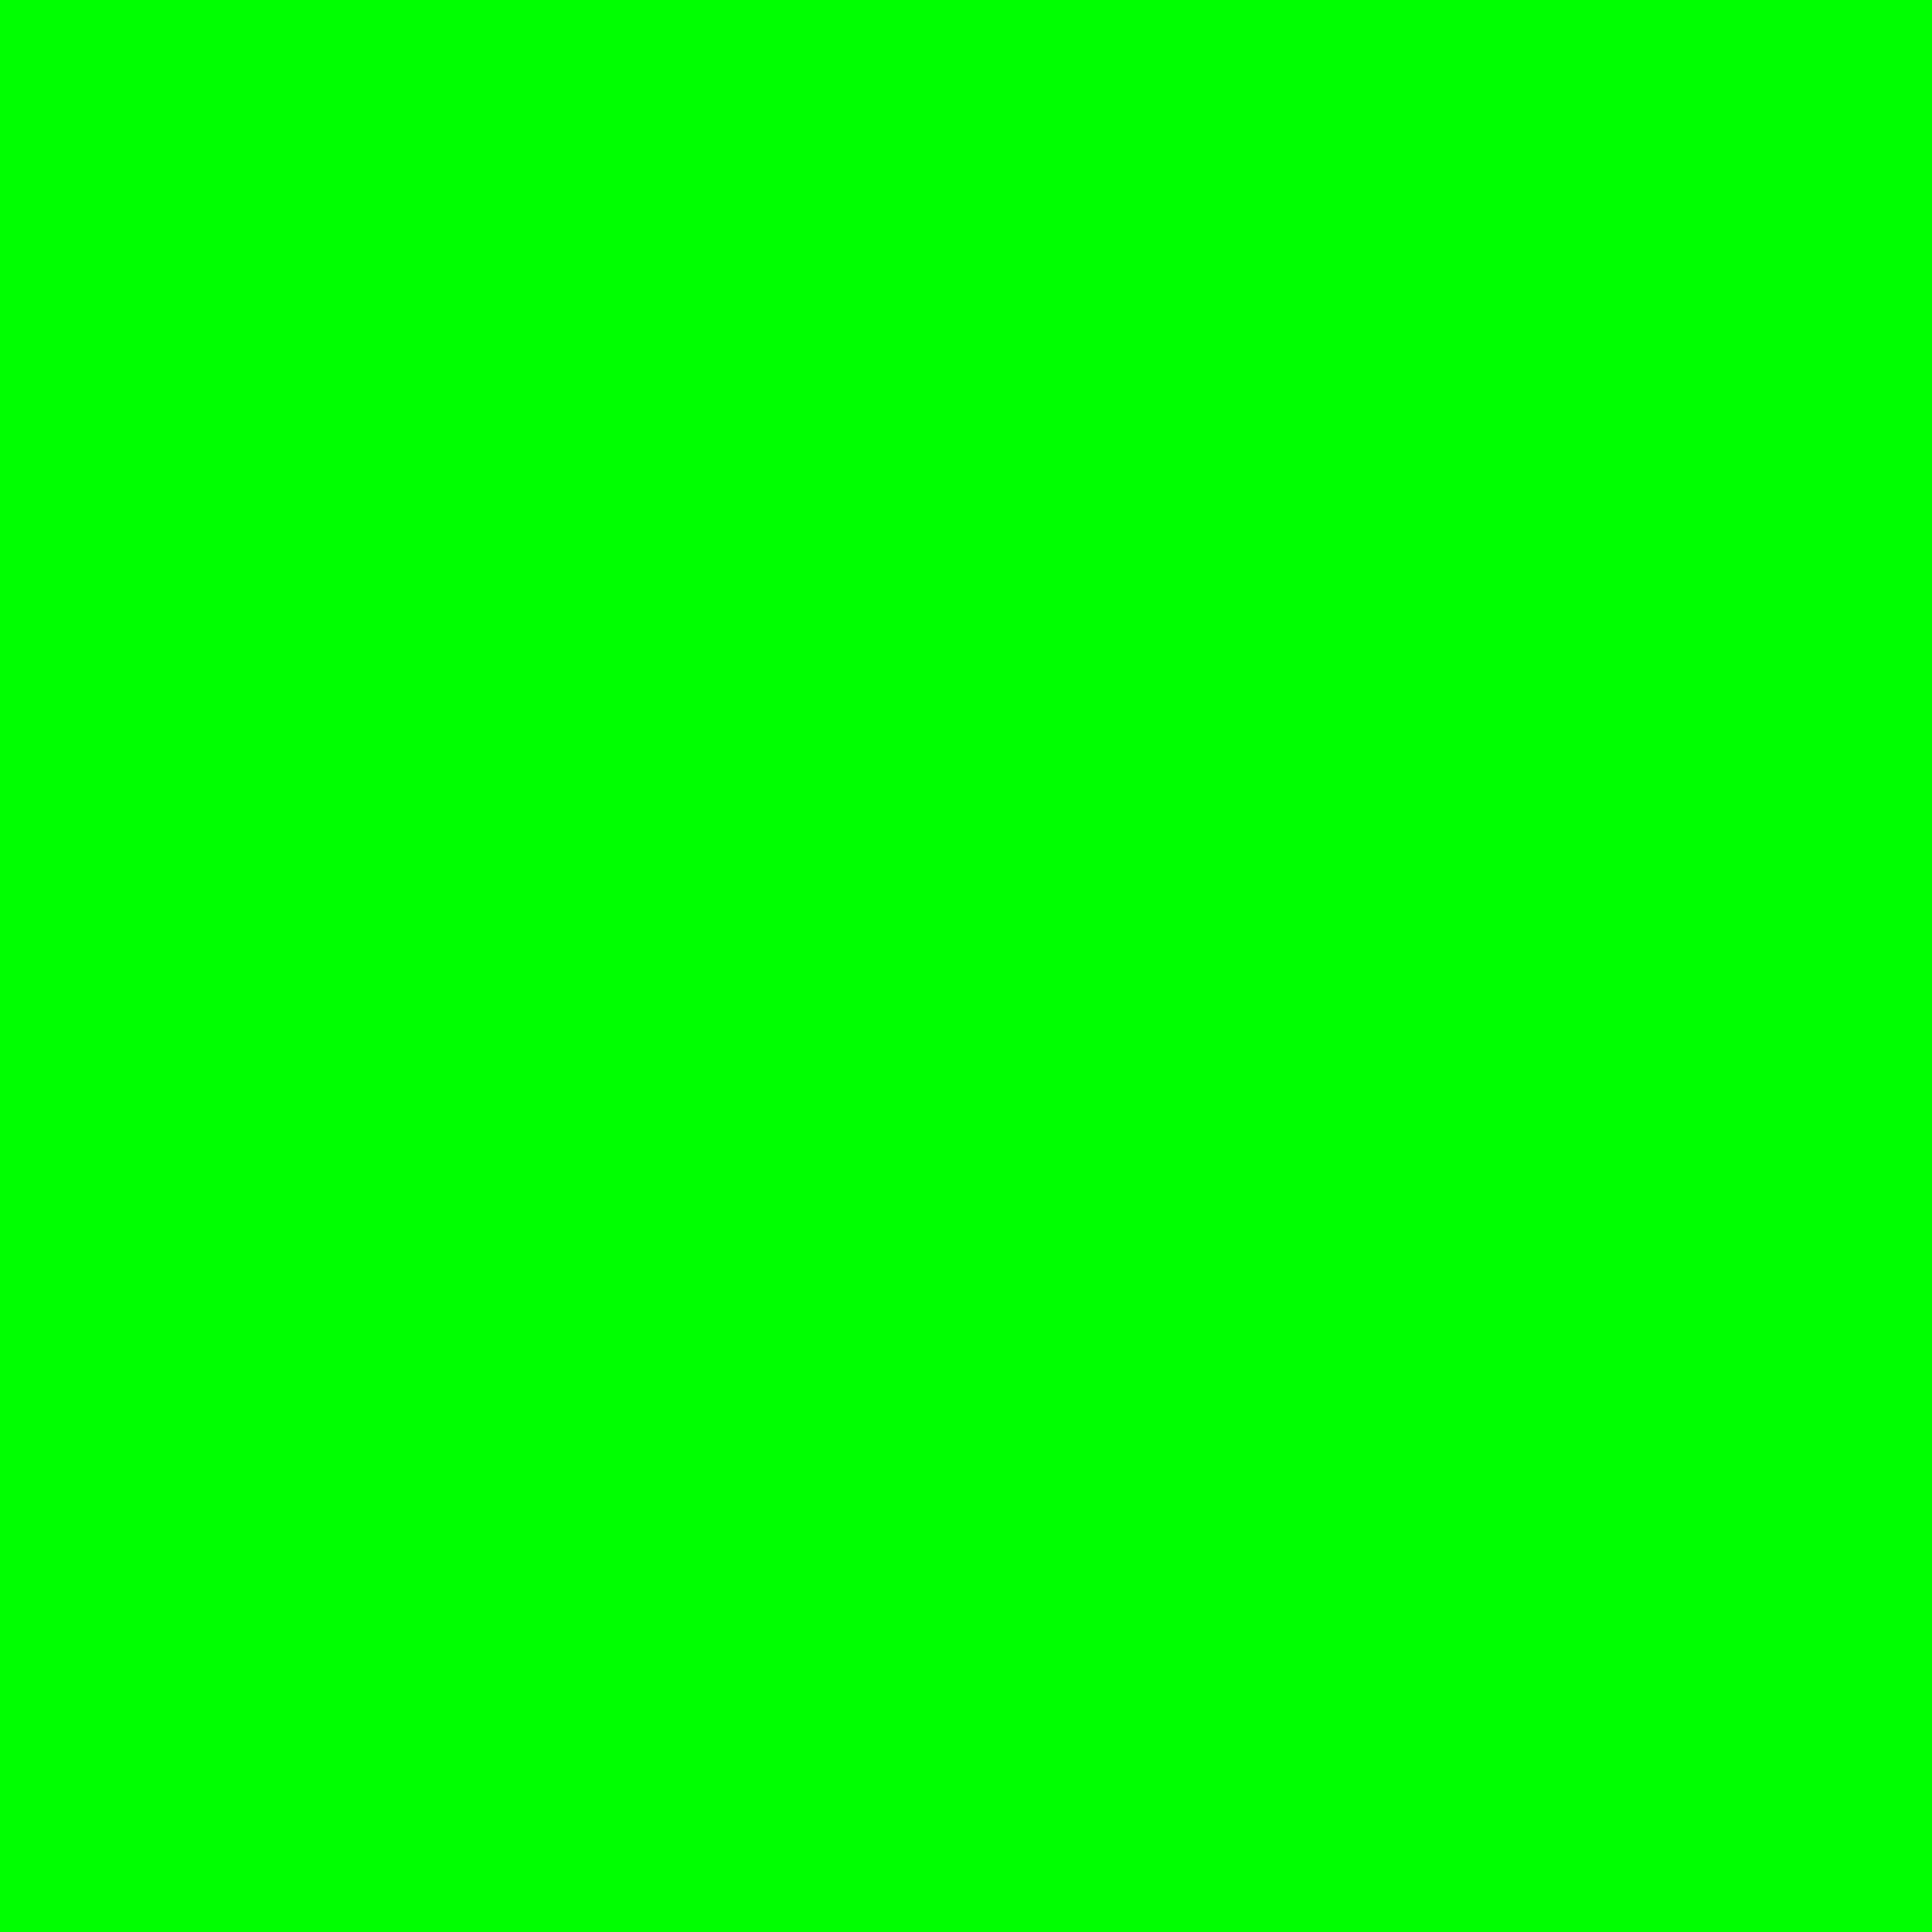 2732x2732 Green X11 Gui Green Solid Color Background